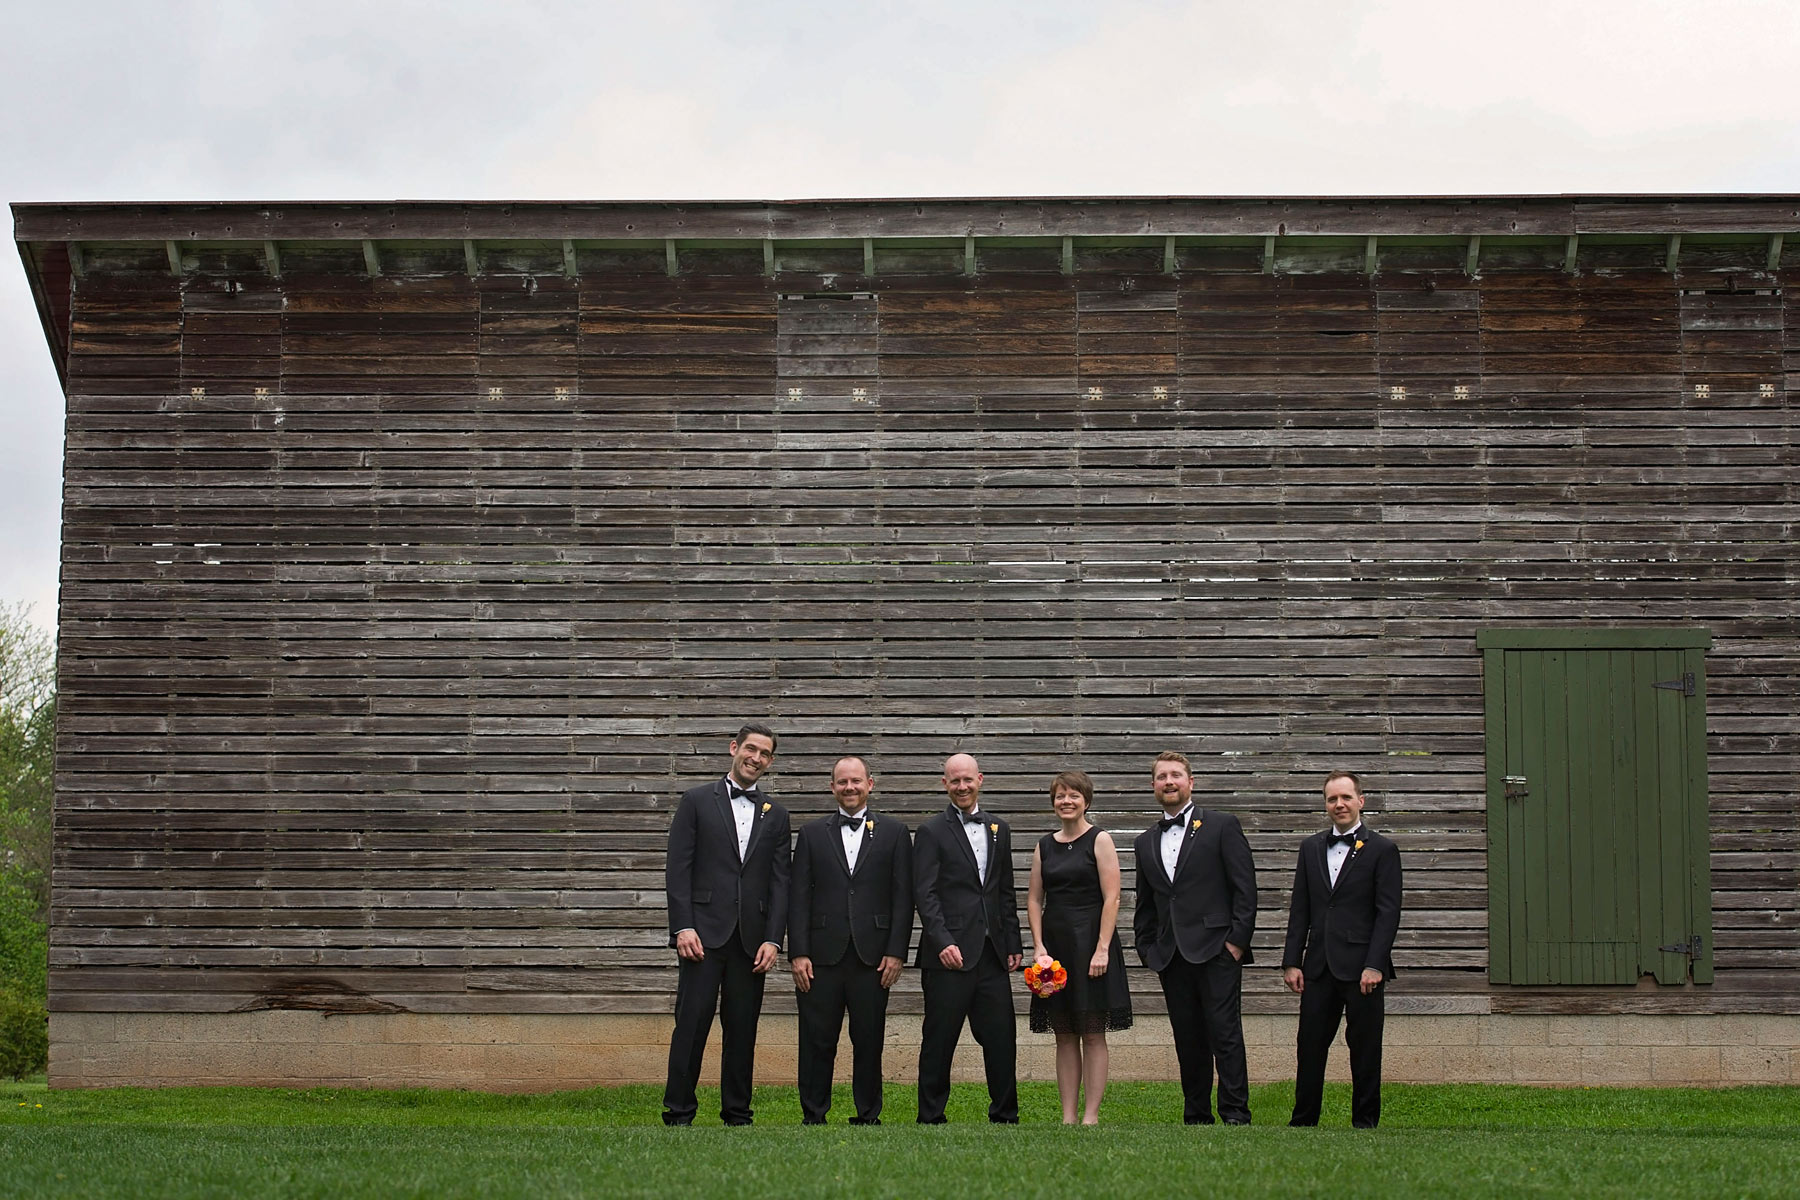 formal shot of groom's wedding party in front of feed barn